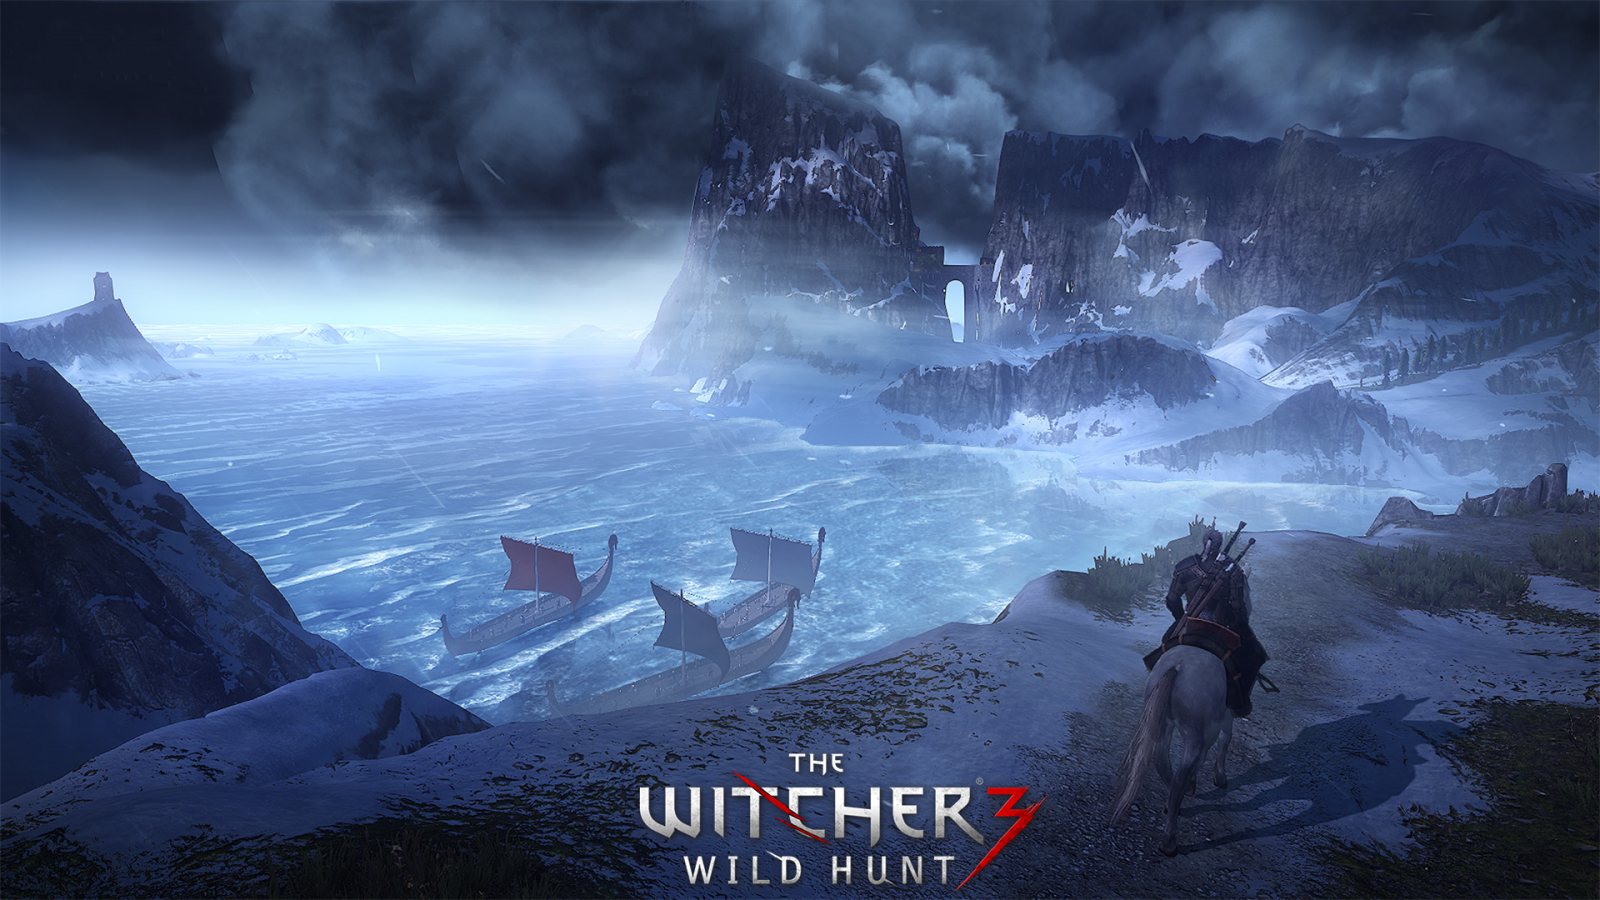 Free Download The Witcher 3 Wild Hunt Wallpapers 3 Hd Wallpapers